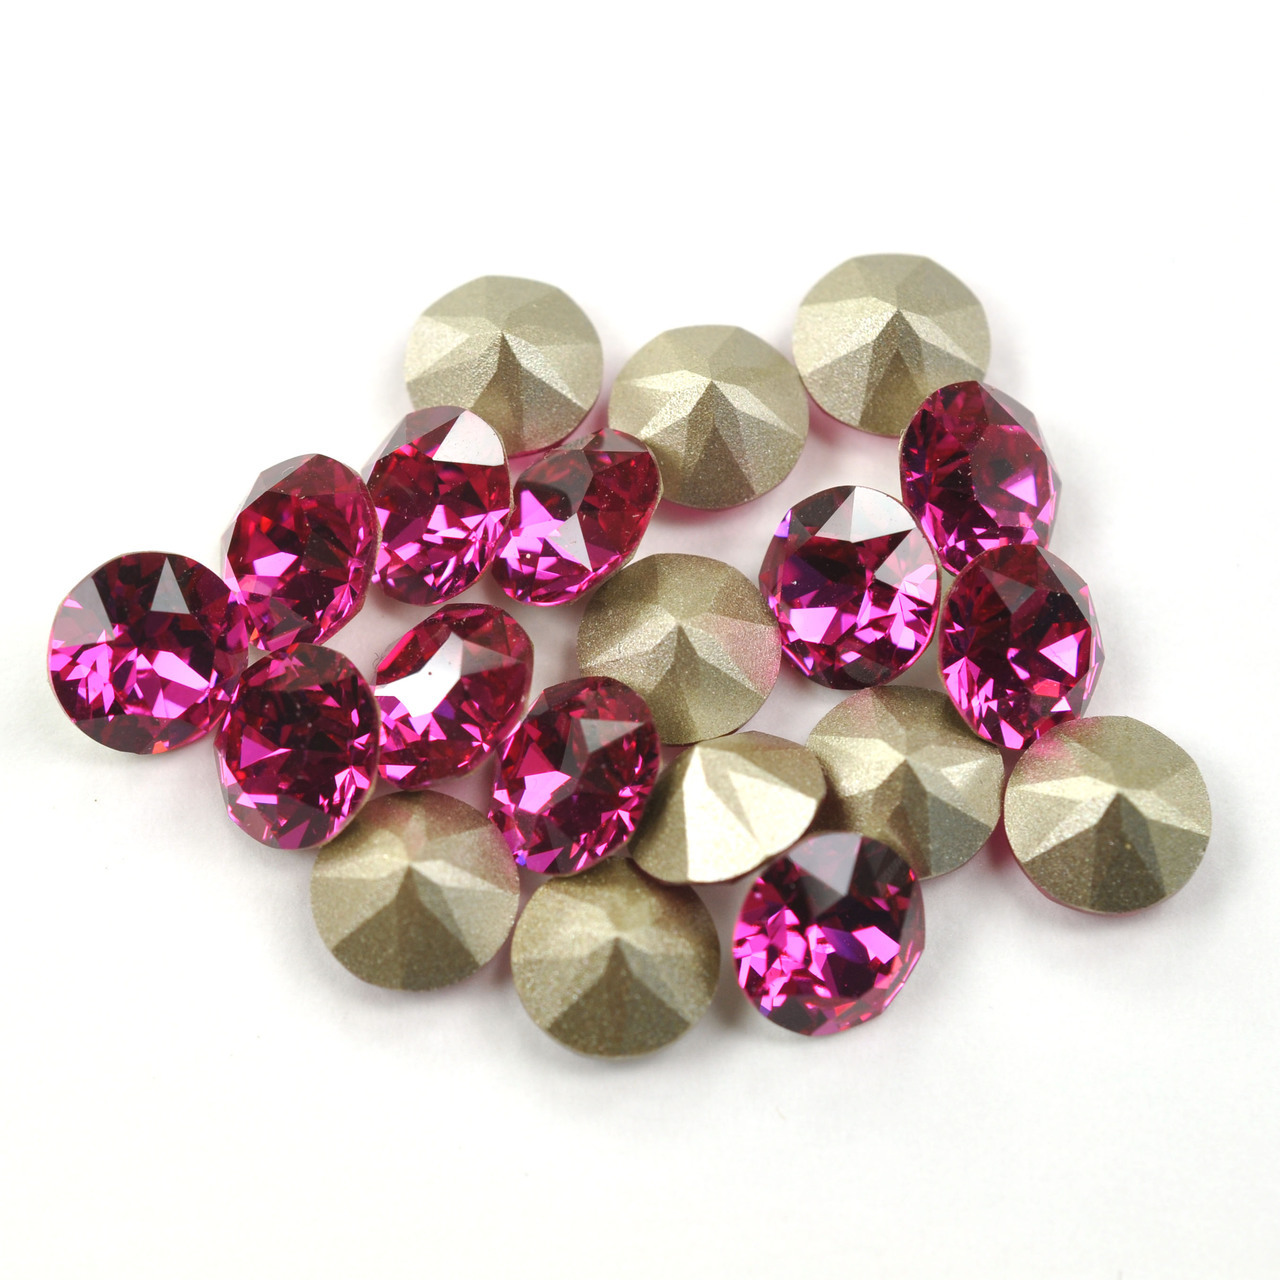 Swarovski Elements, Xirius Chaton 1088 PP14, Fuchsia 2mm 10 buc